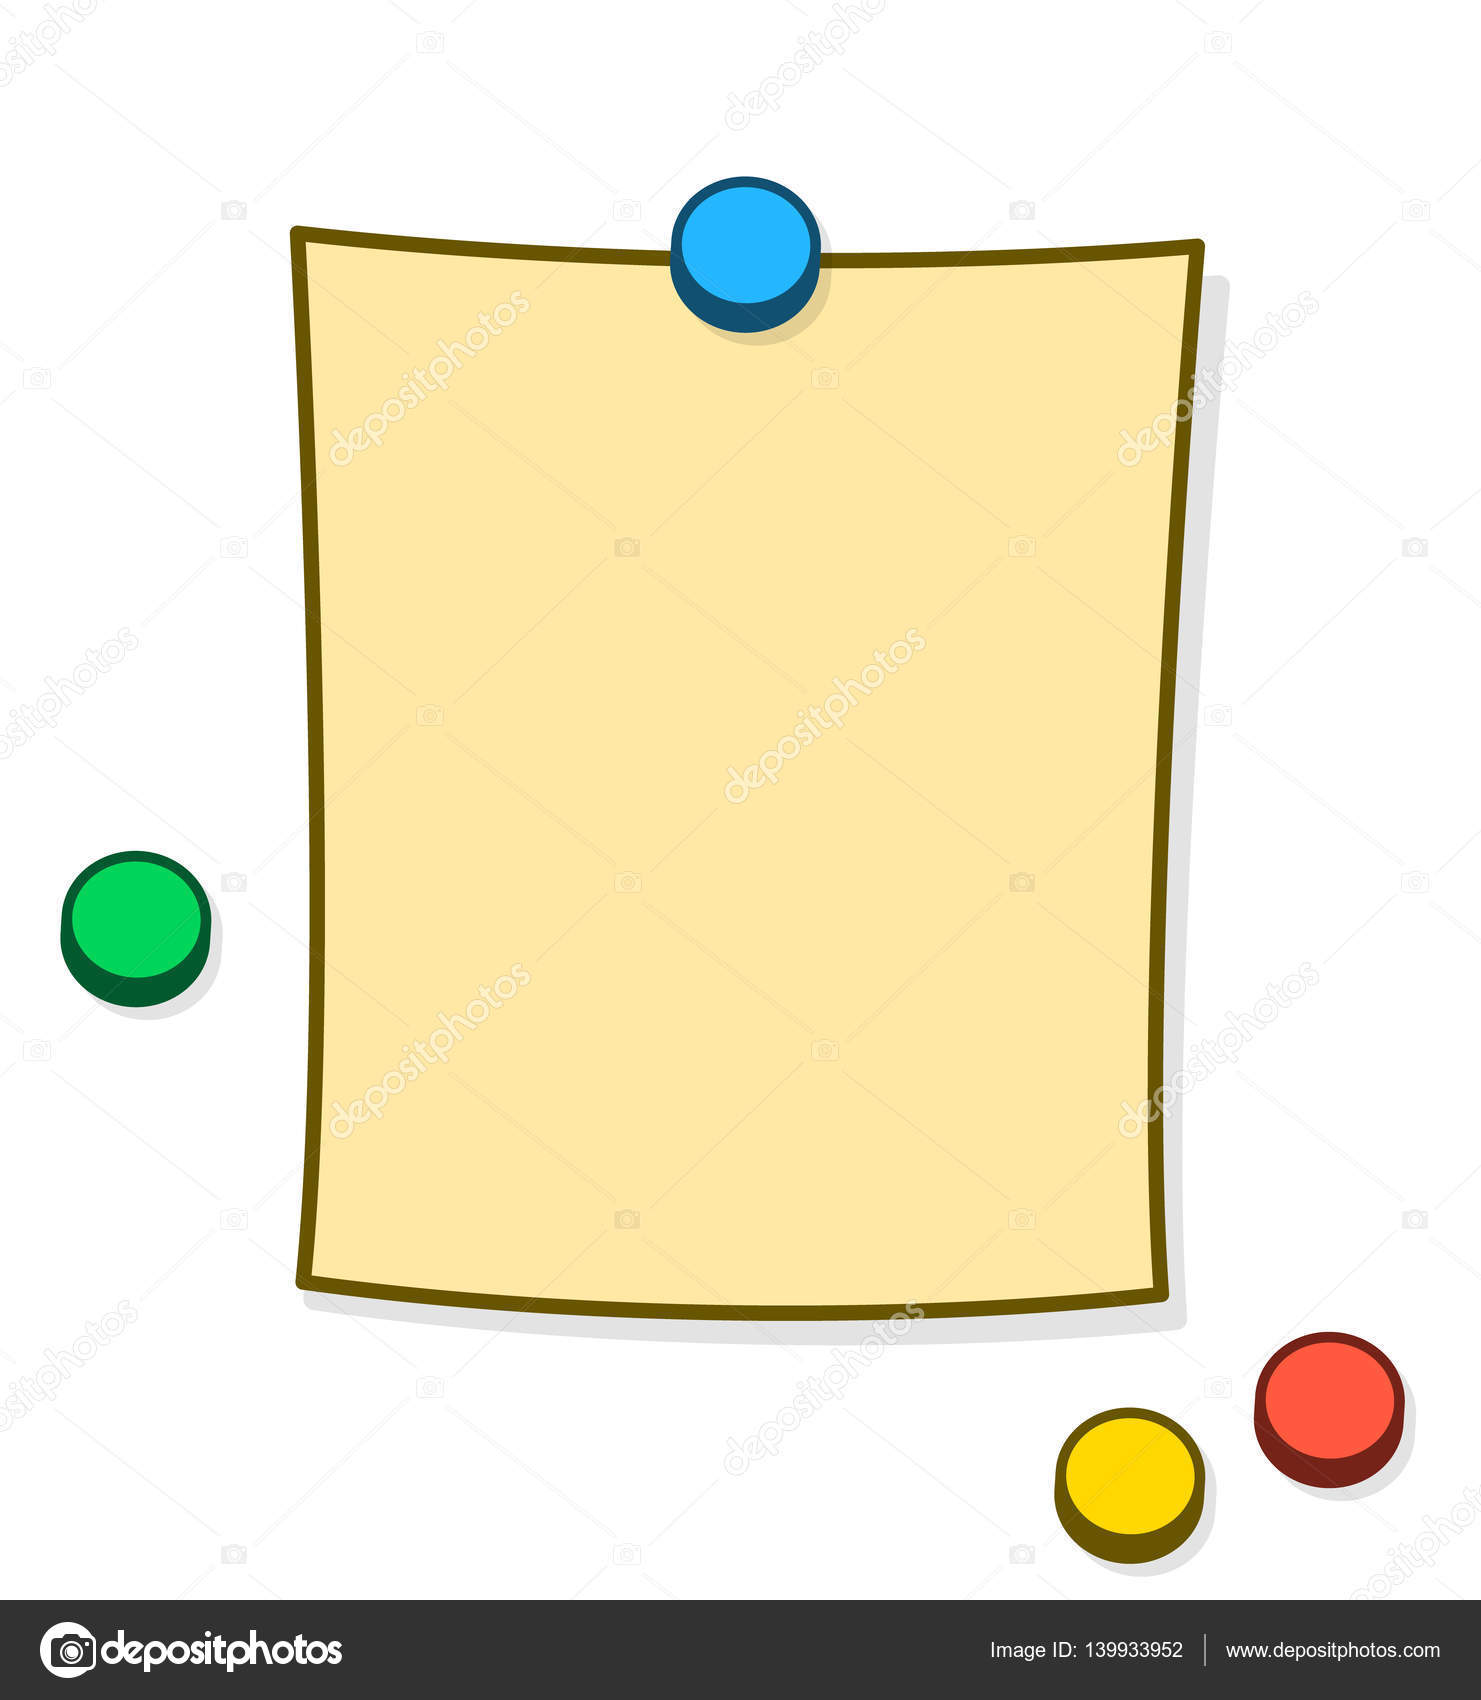 Blank Memo   Blank Memo Or Note With Thumb Tacks Or Magnets Stock Vector C A N